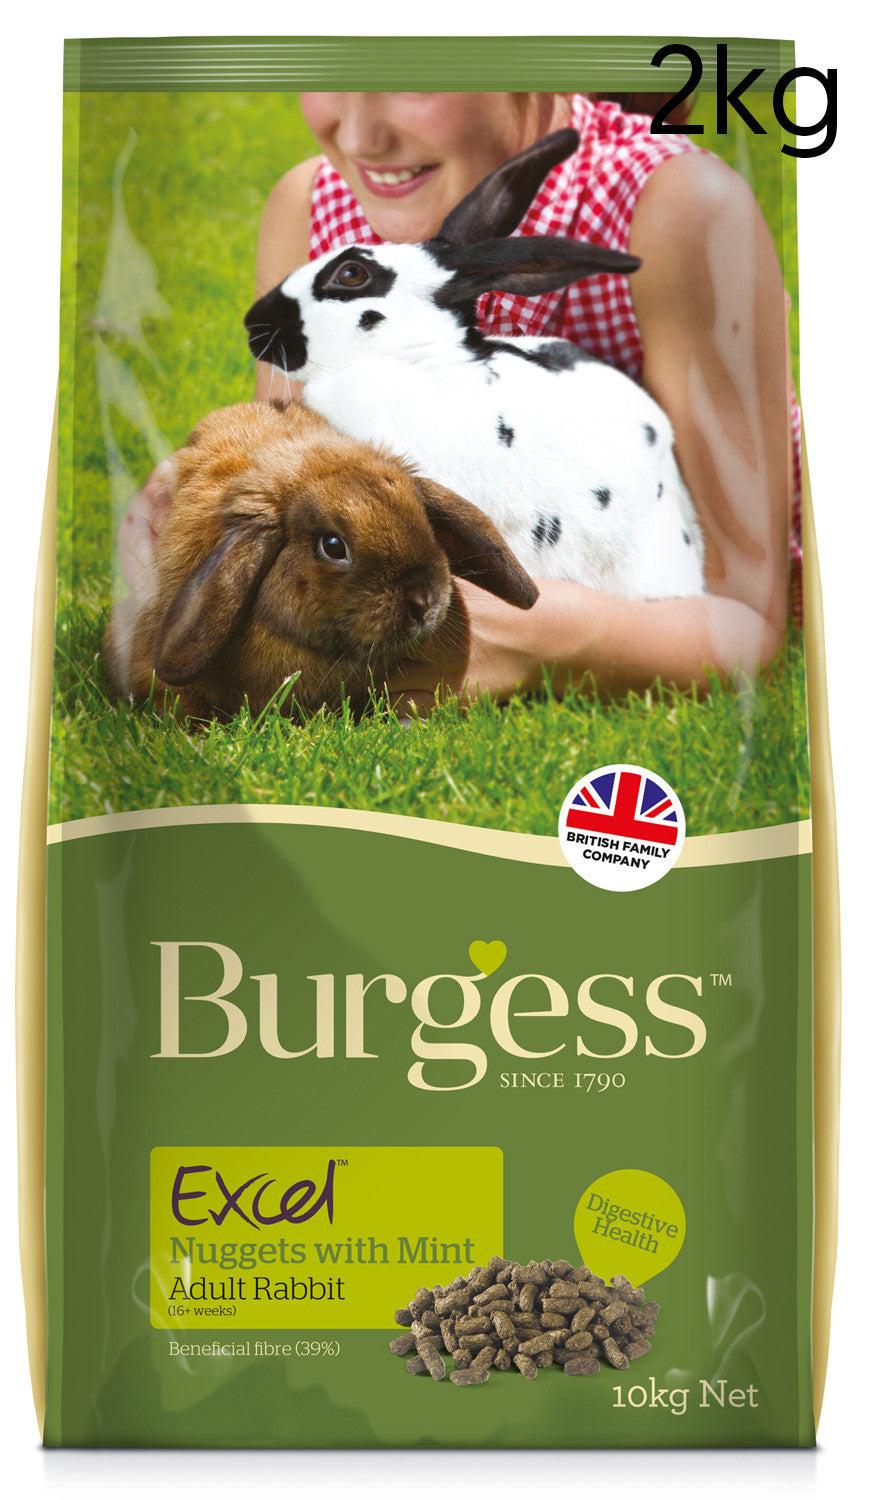 Excel Adult Rabbit Food